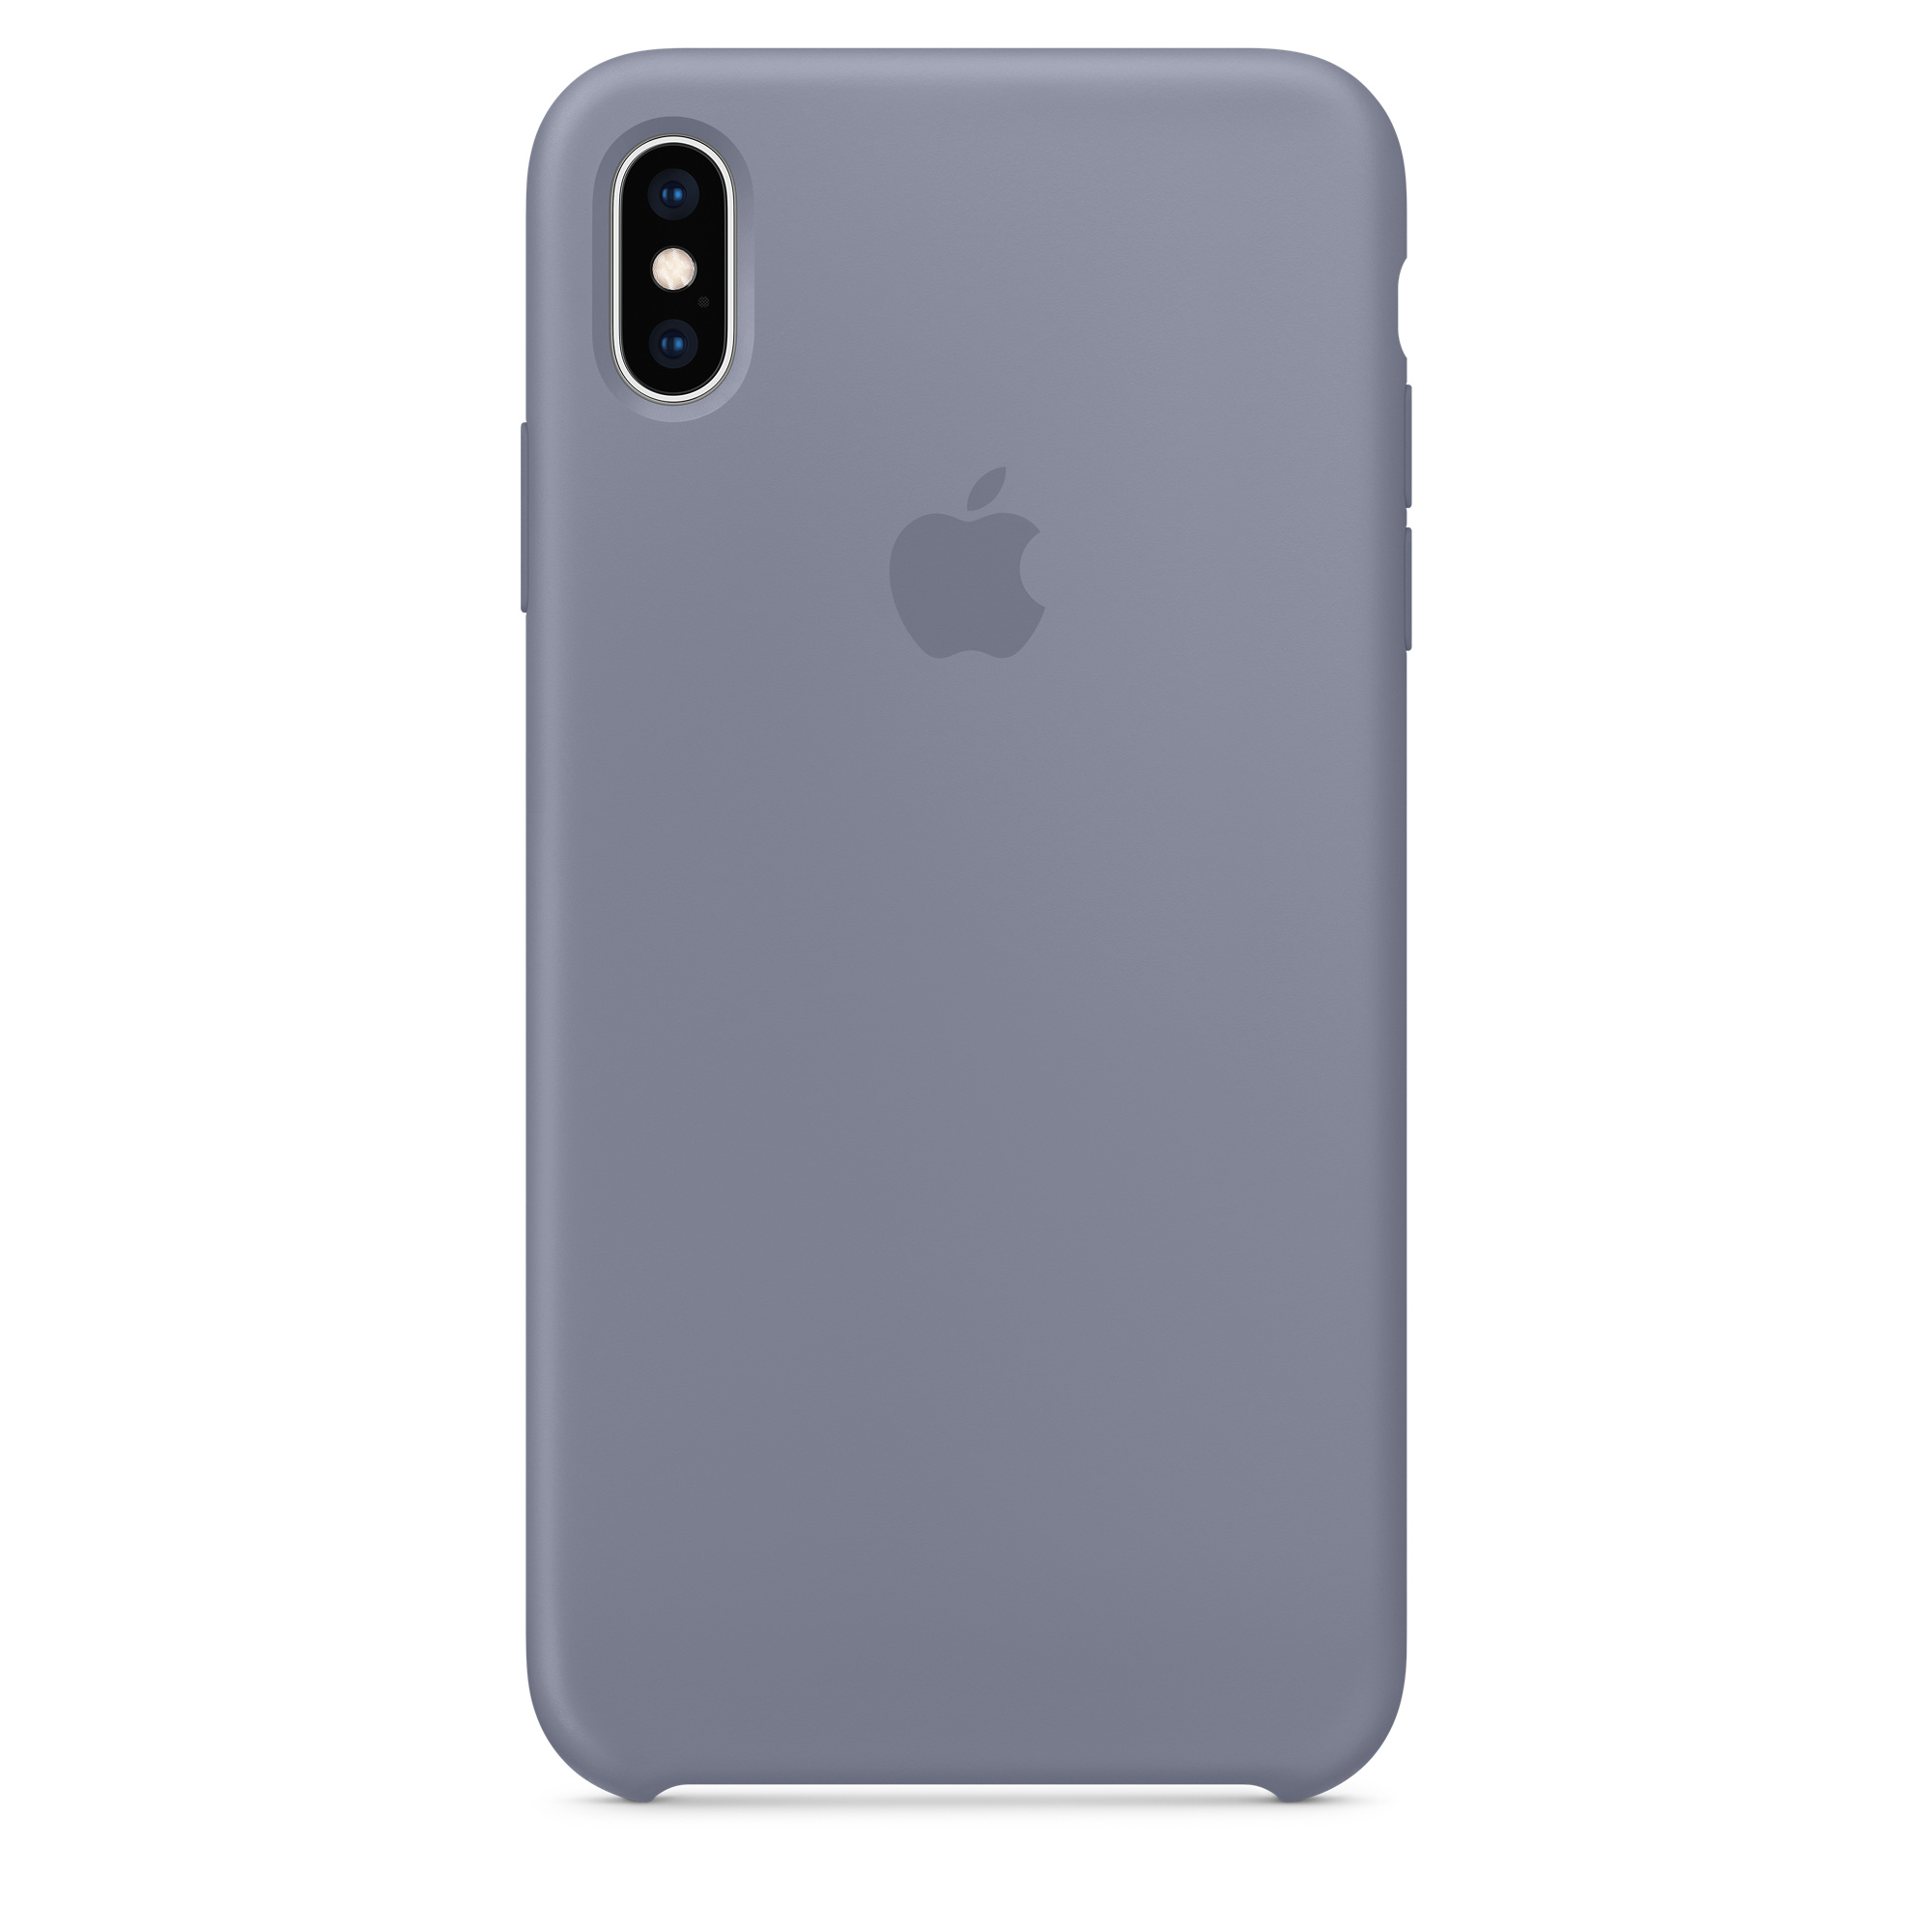 separation shoes f79a7 c14ee iPhone XS Max Silicone Case - Lavender Grey